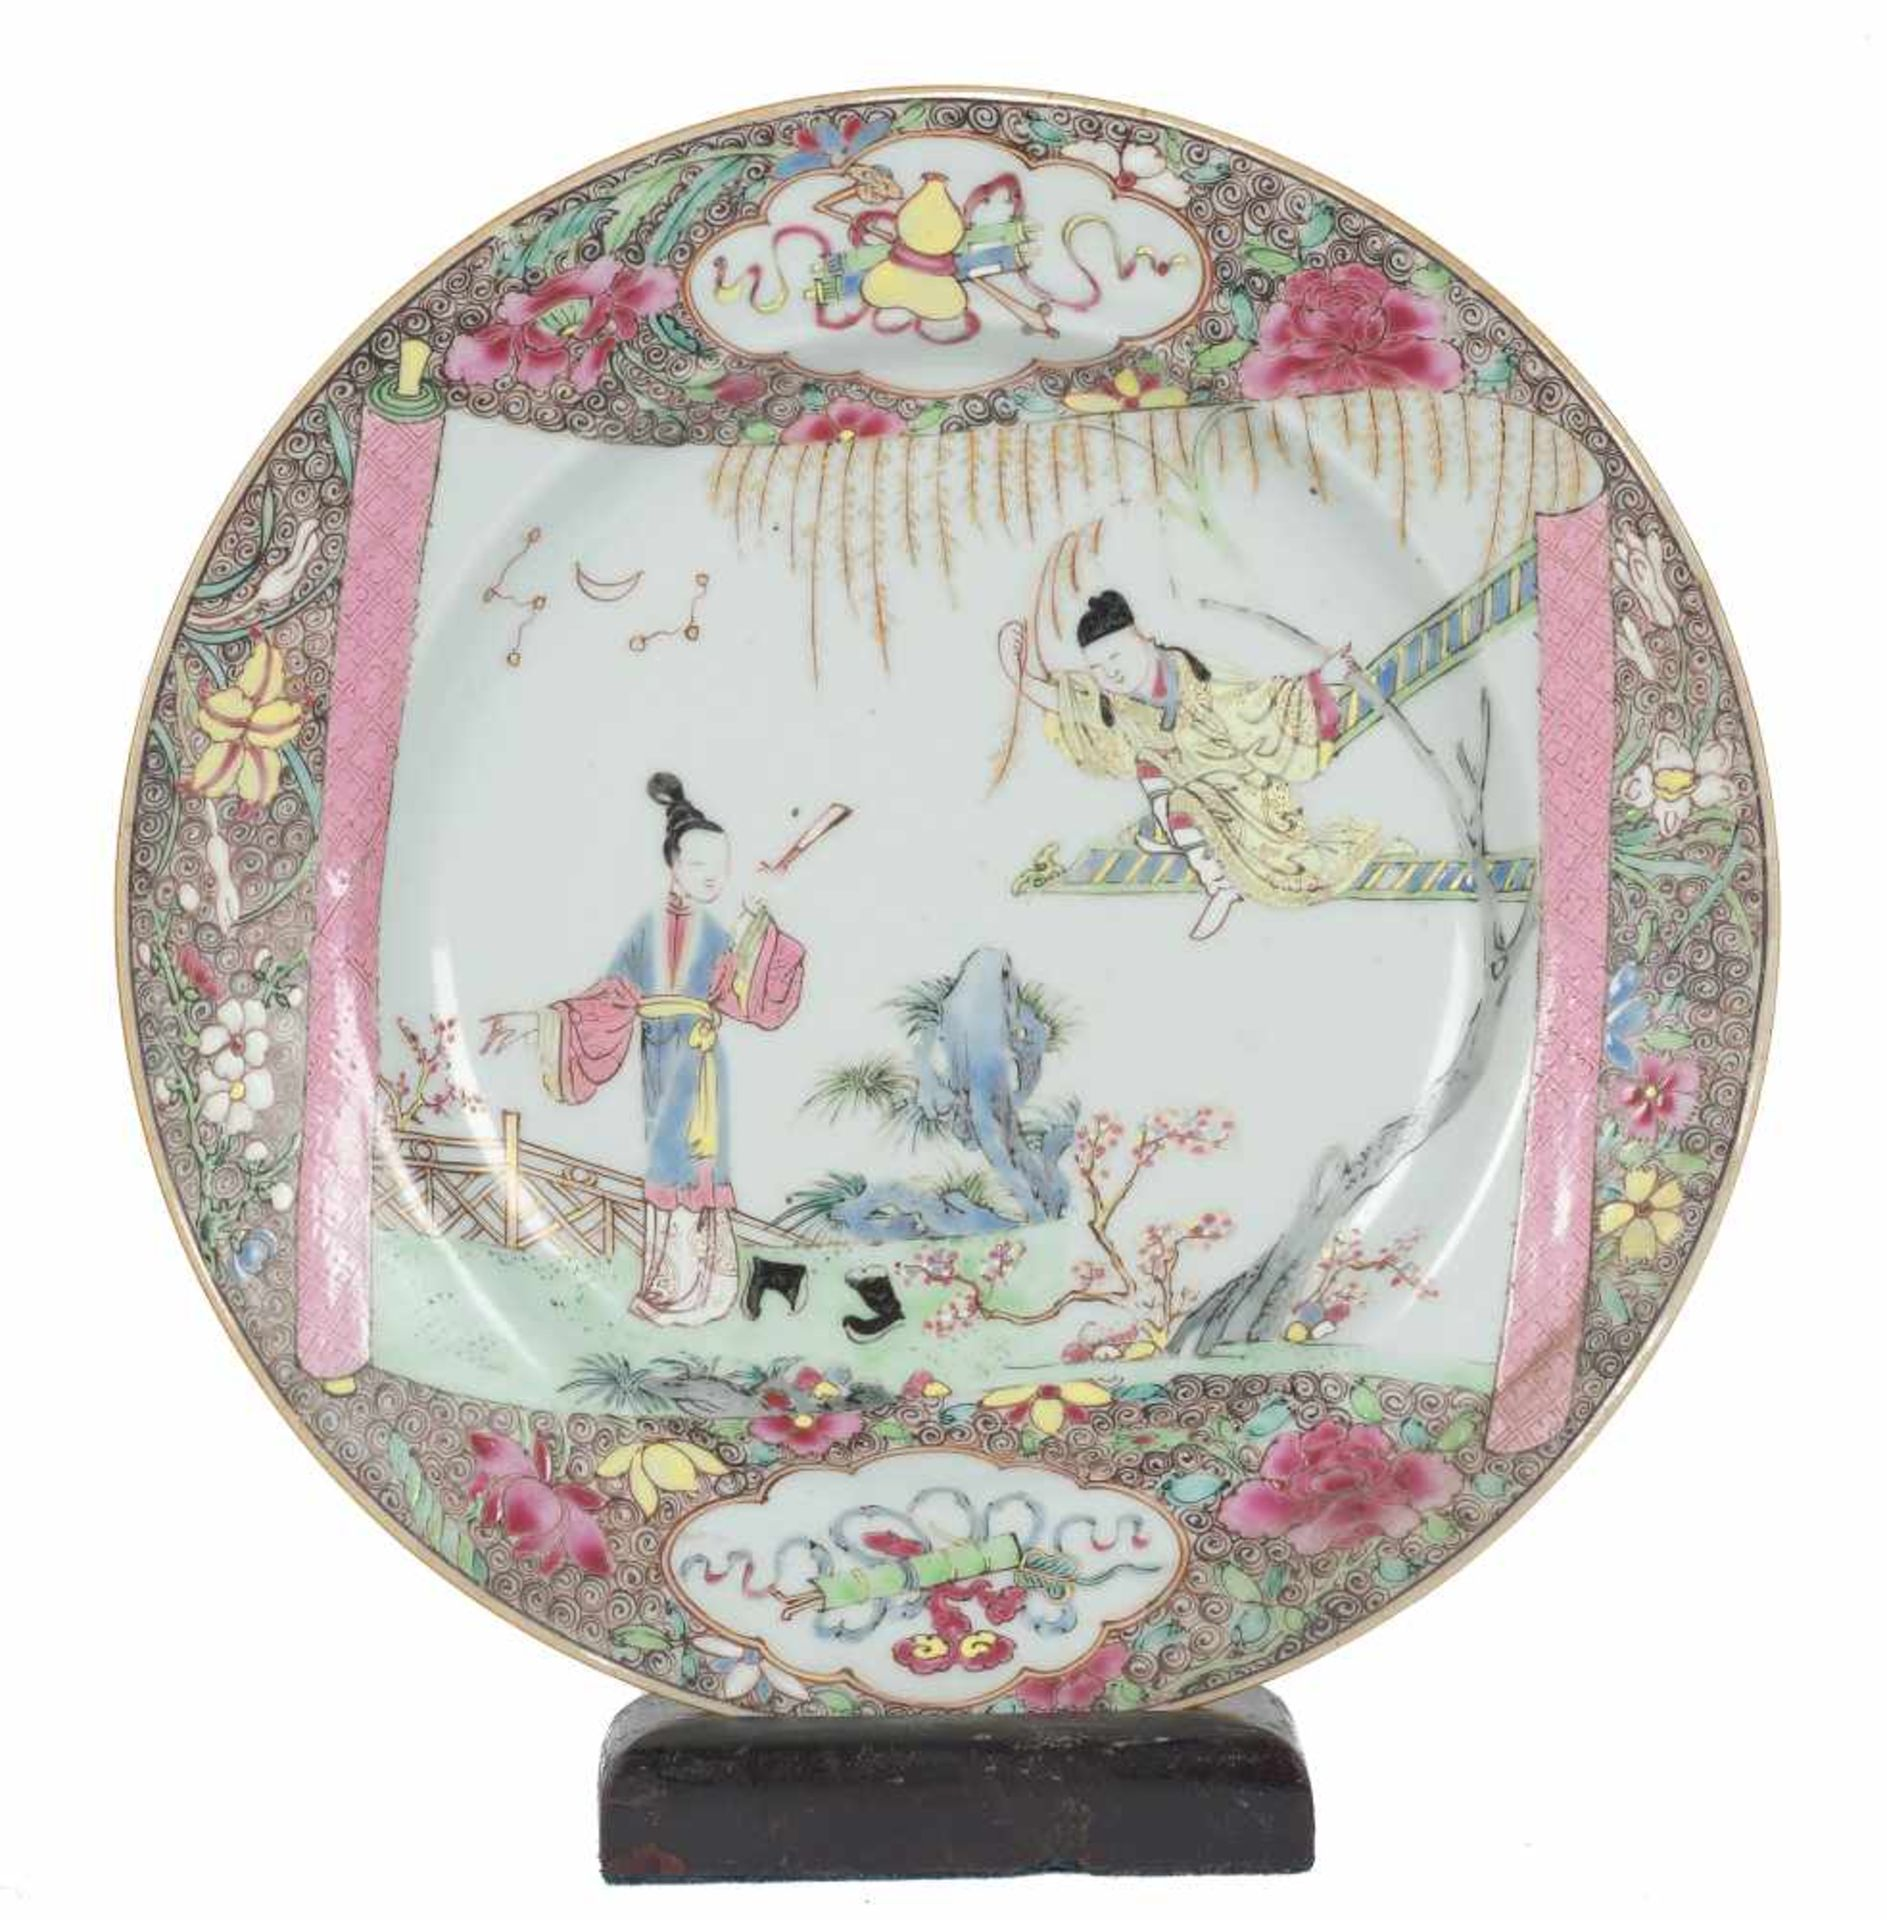 Los 10 - A Chinese Famille Rose large dish. Yongzheng period (1723-1735) and Qianlong period (1736-1795). <b